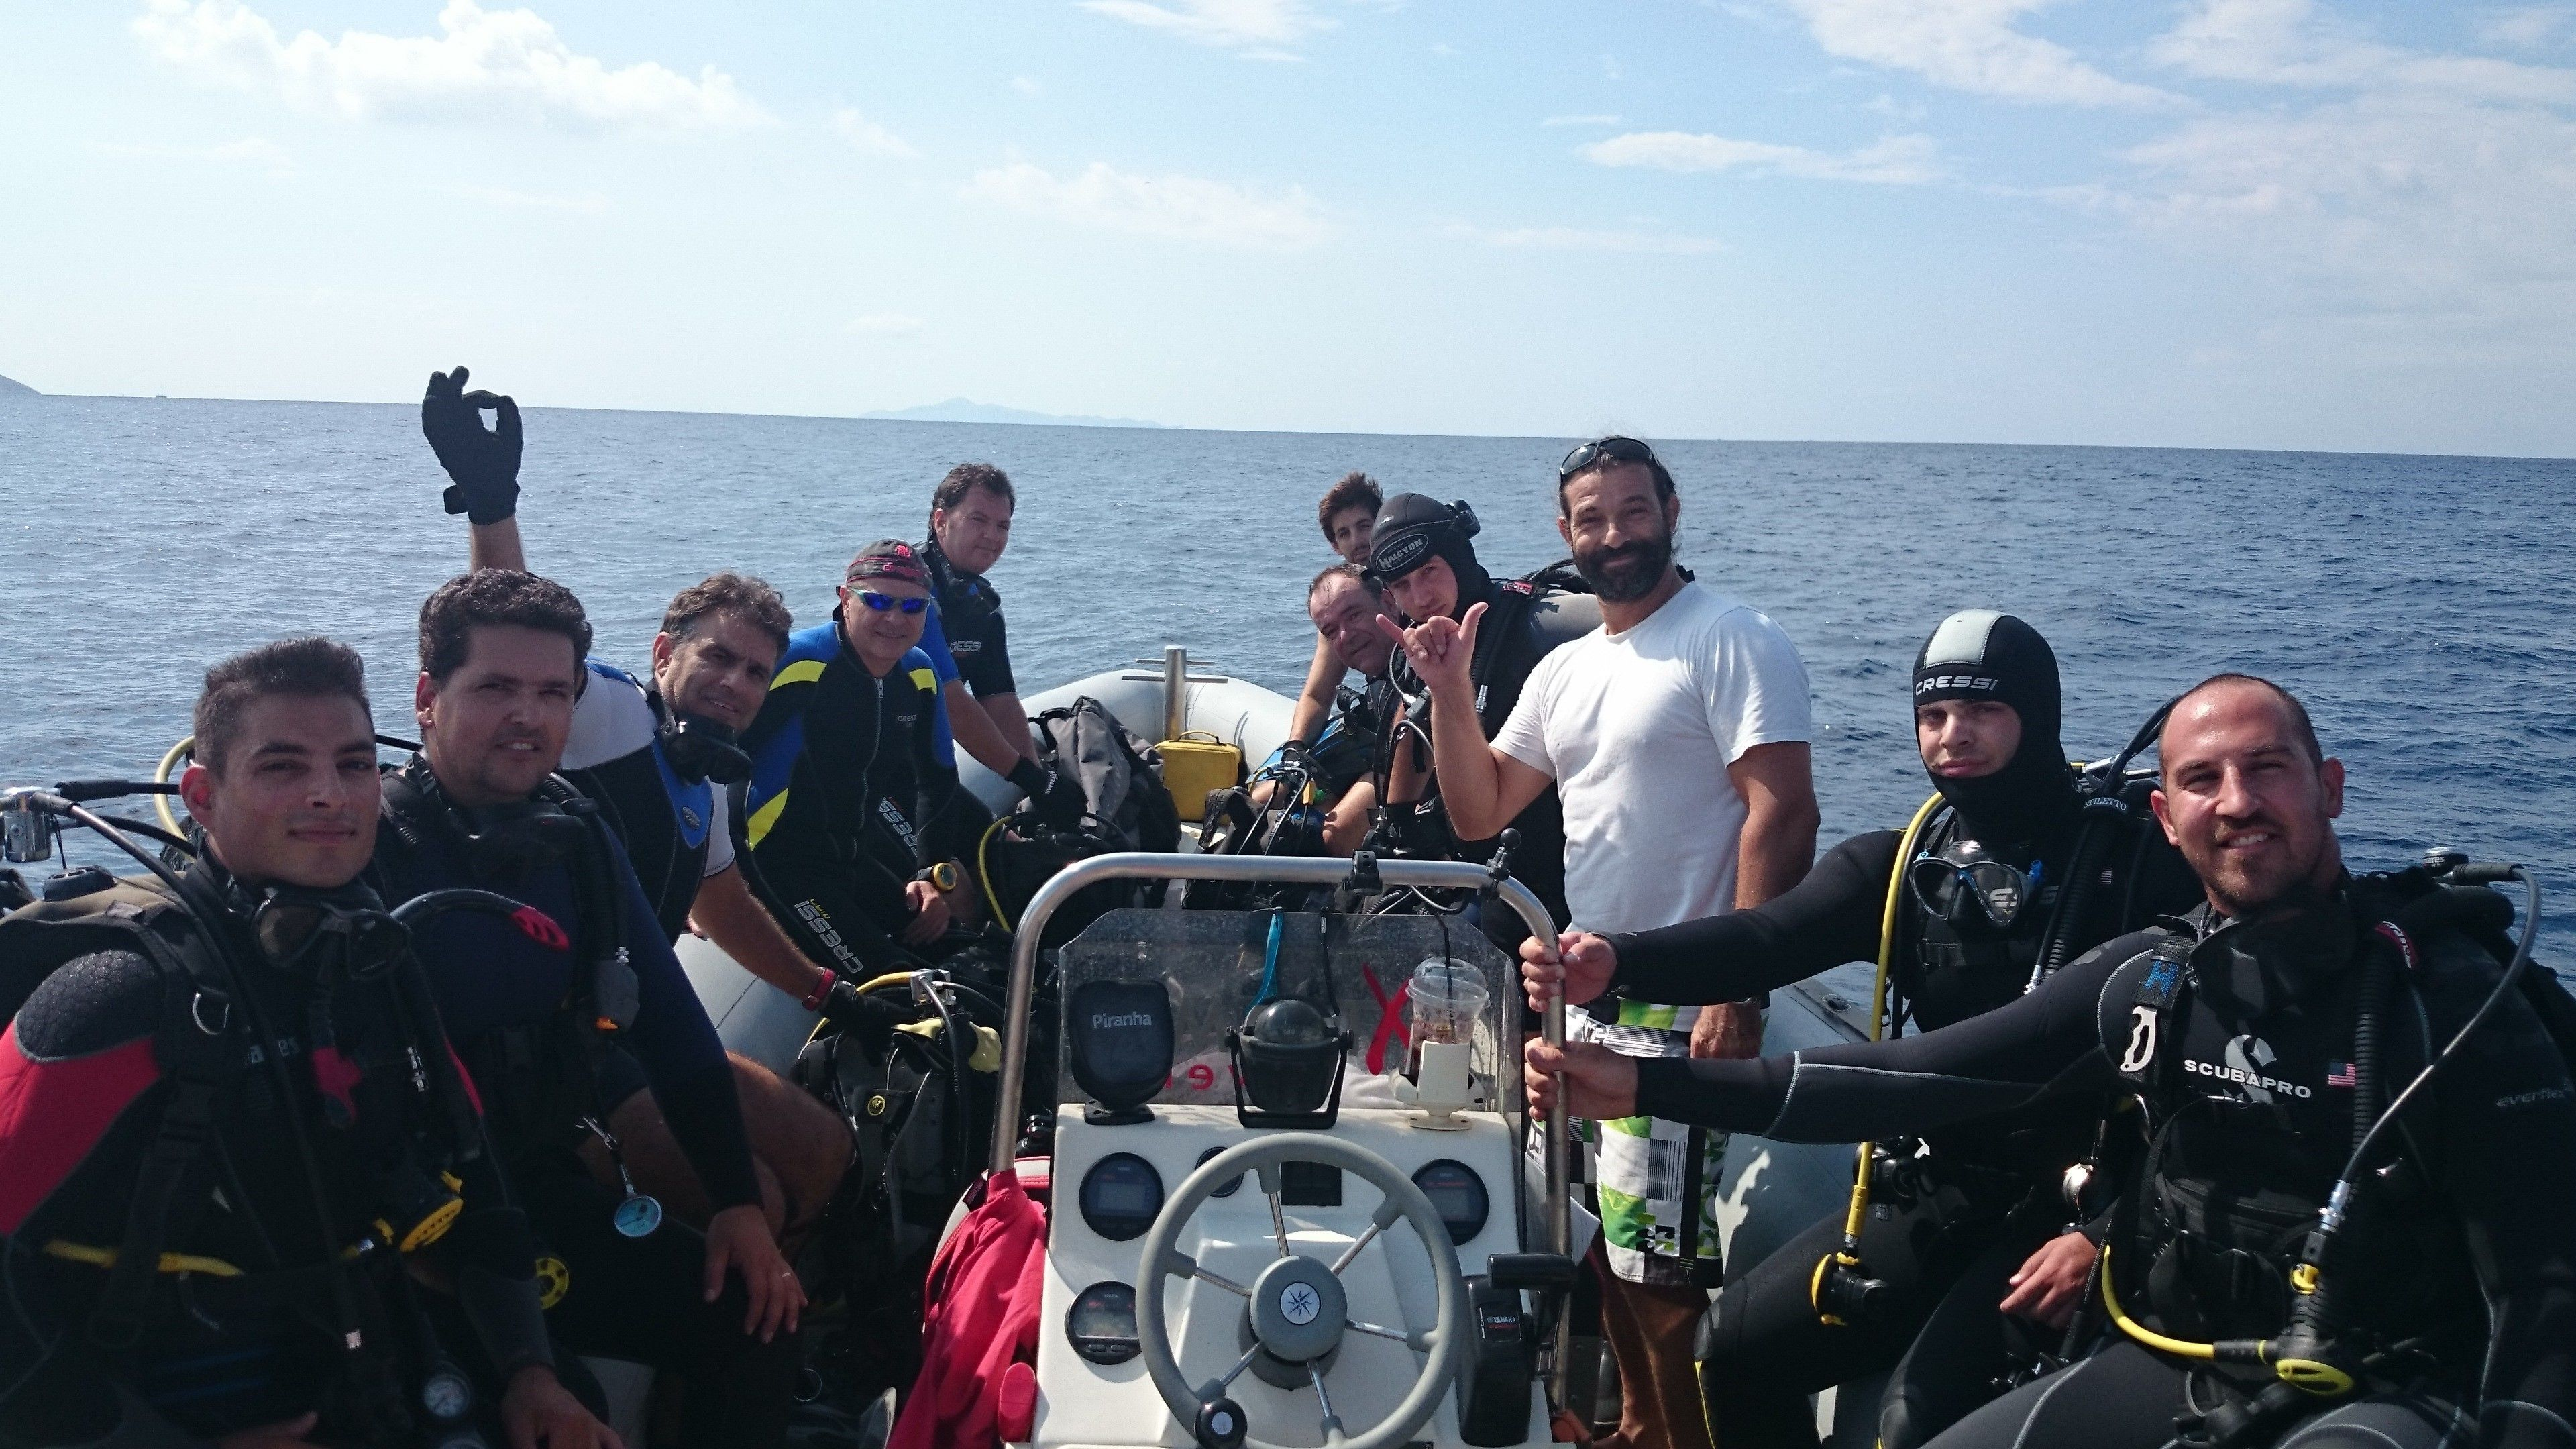 SCUBA diving group on the bow of a boat